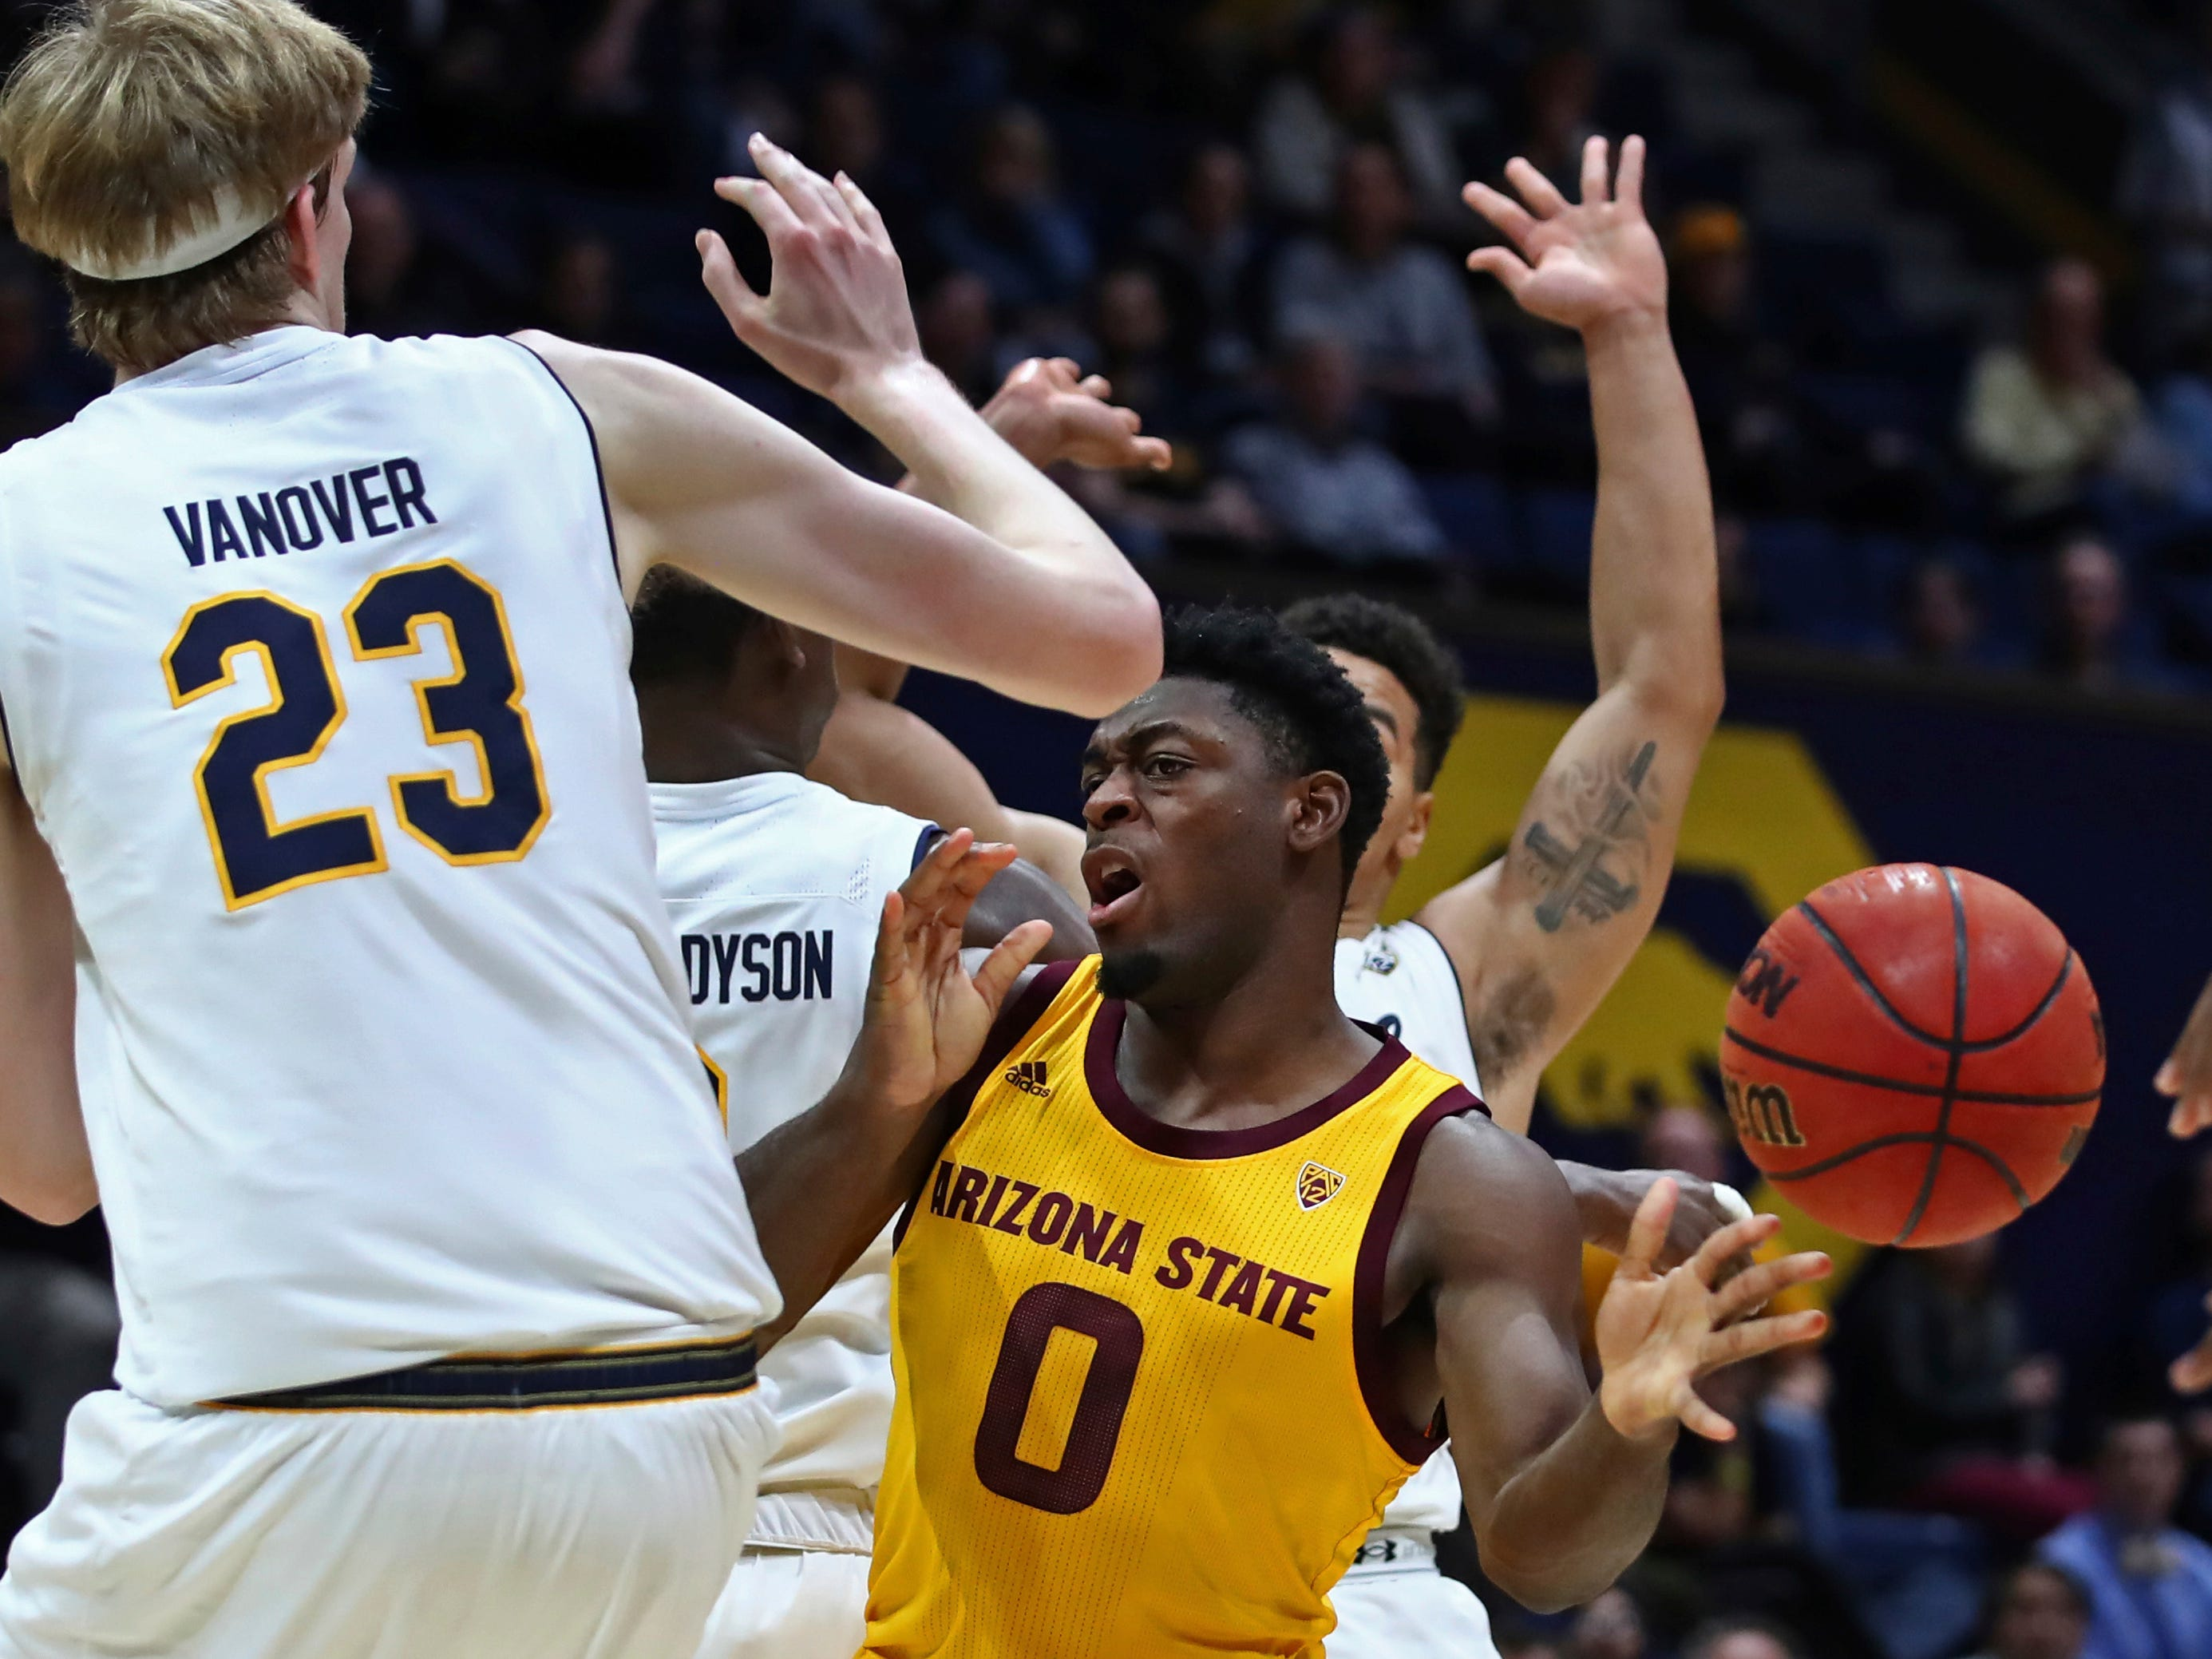 Arizona State's Luguentz Dort, right, passes the ball away from California's California's Connor Vanover (23) during the first half of an NCAA college basketball game Wednesday, Jan. 9, 2019, in Berkeley, Calif. (AP Photo/Ben Margot)